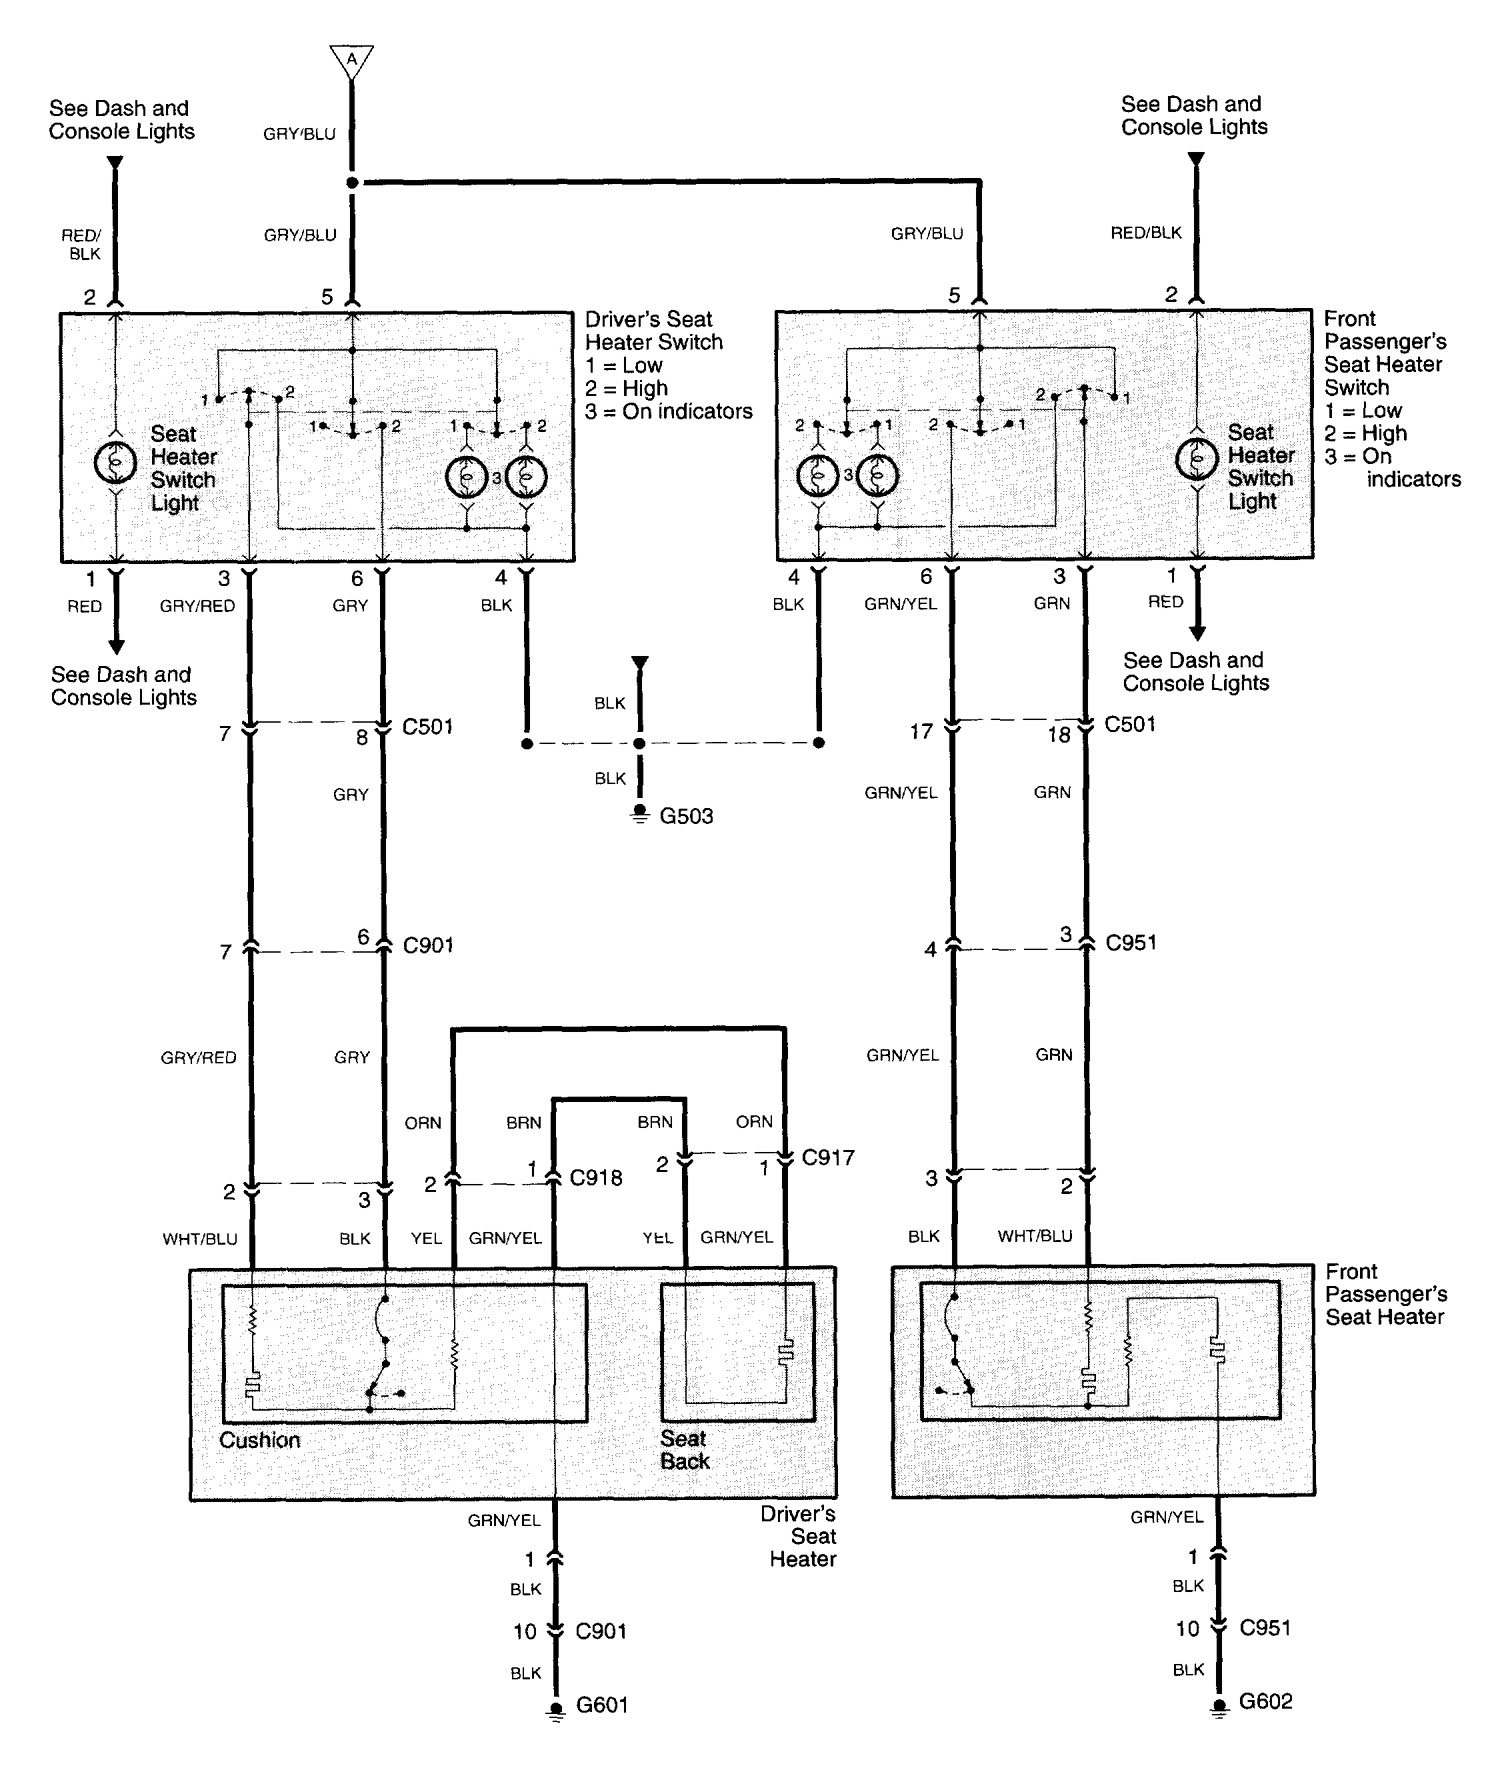 250v ballast wiring diagram picture wiring diagram schematic